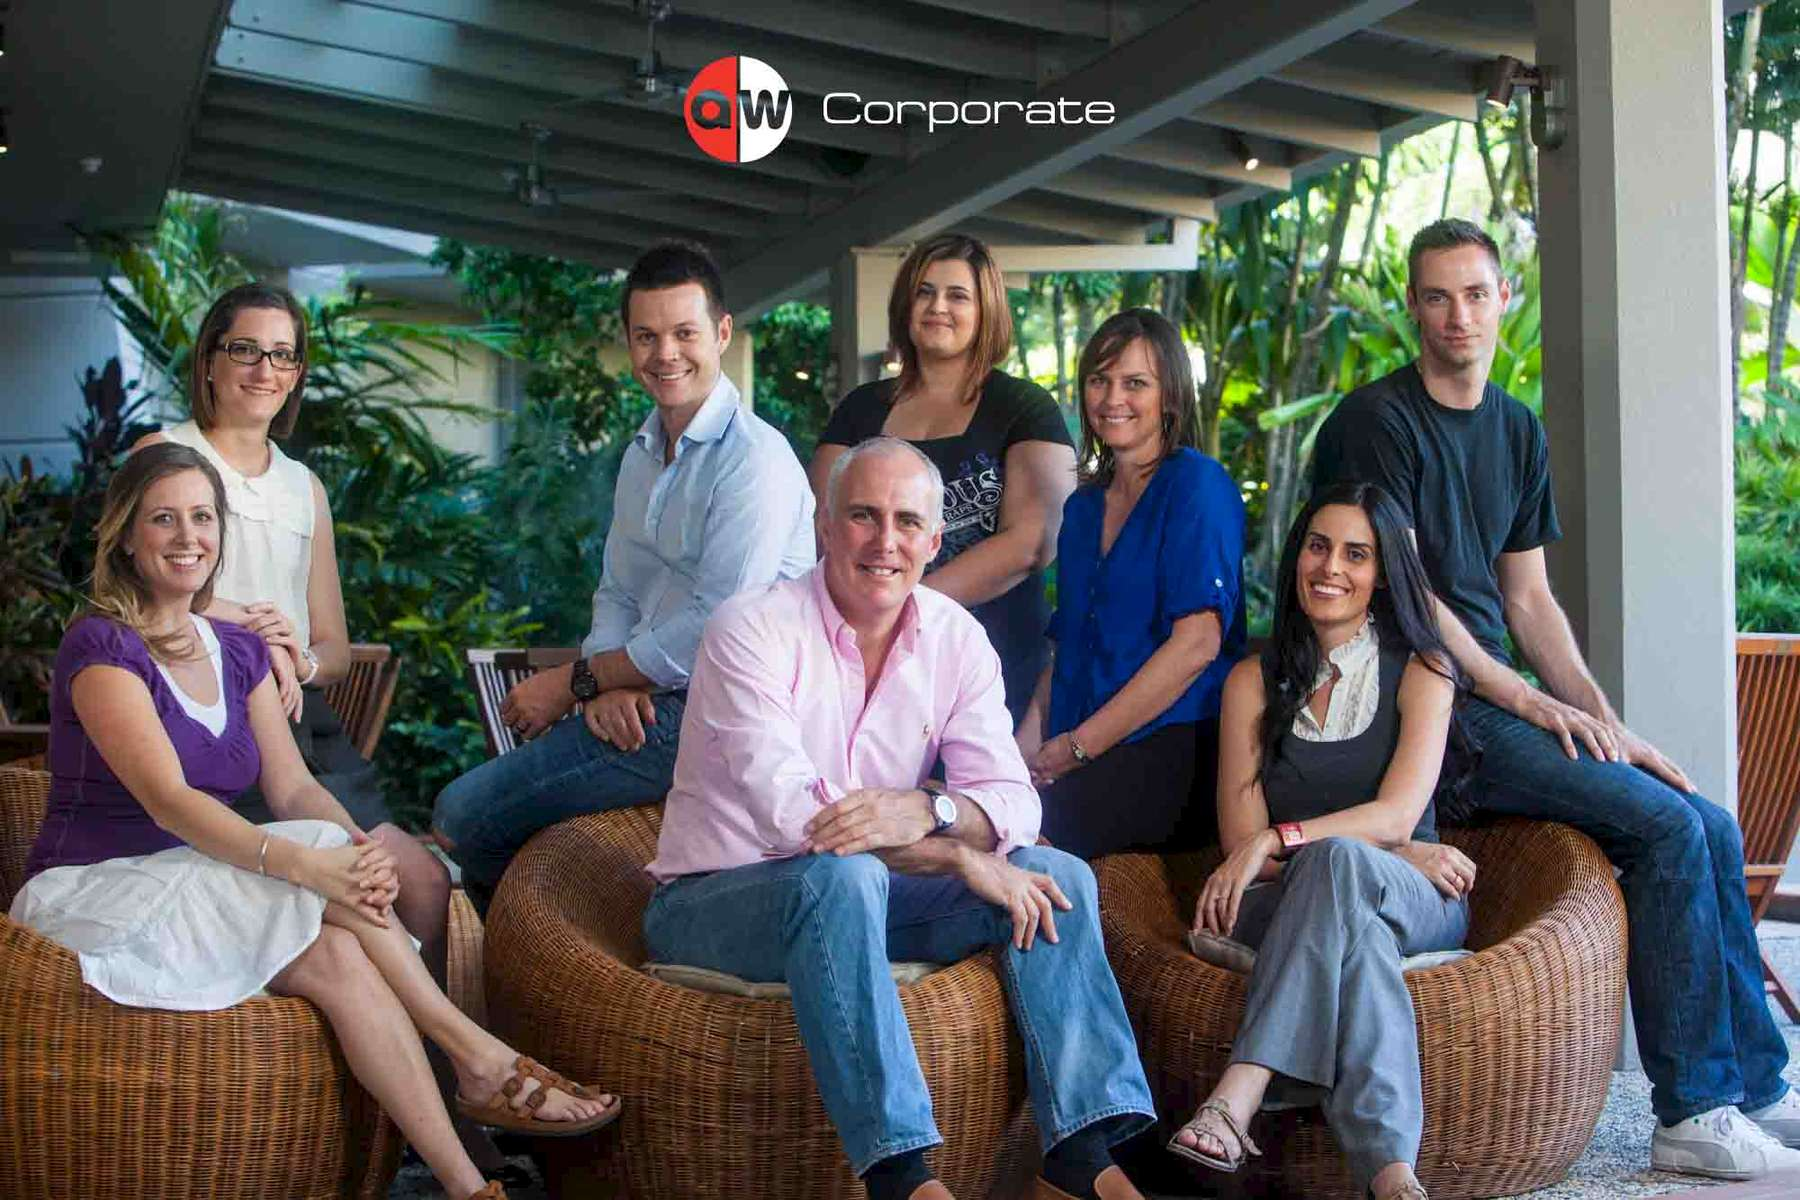 Business portrait of the Koolivoo team - Cairns corporate photographer